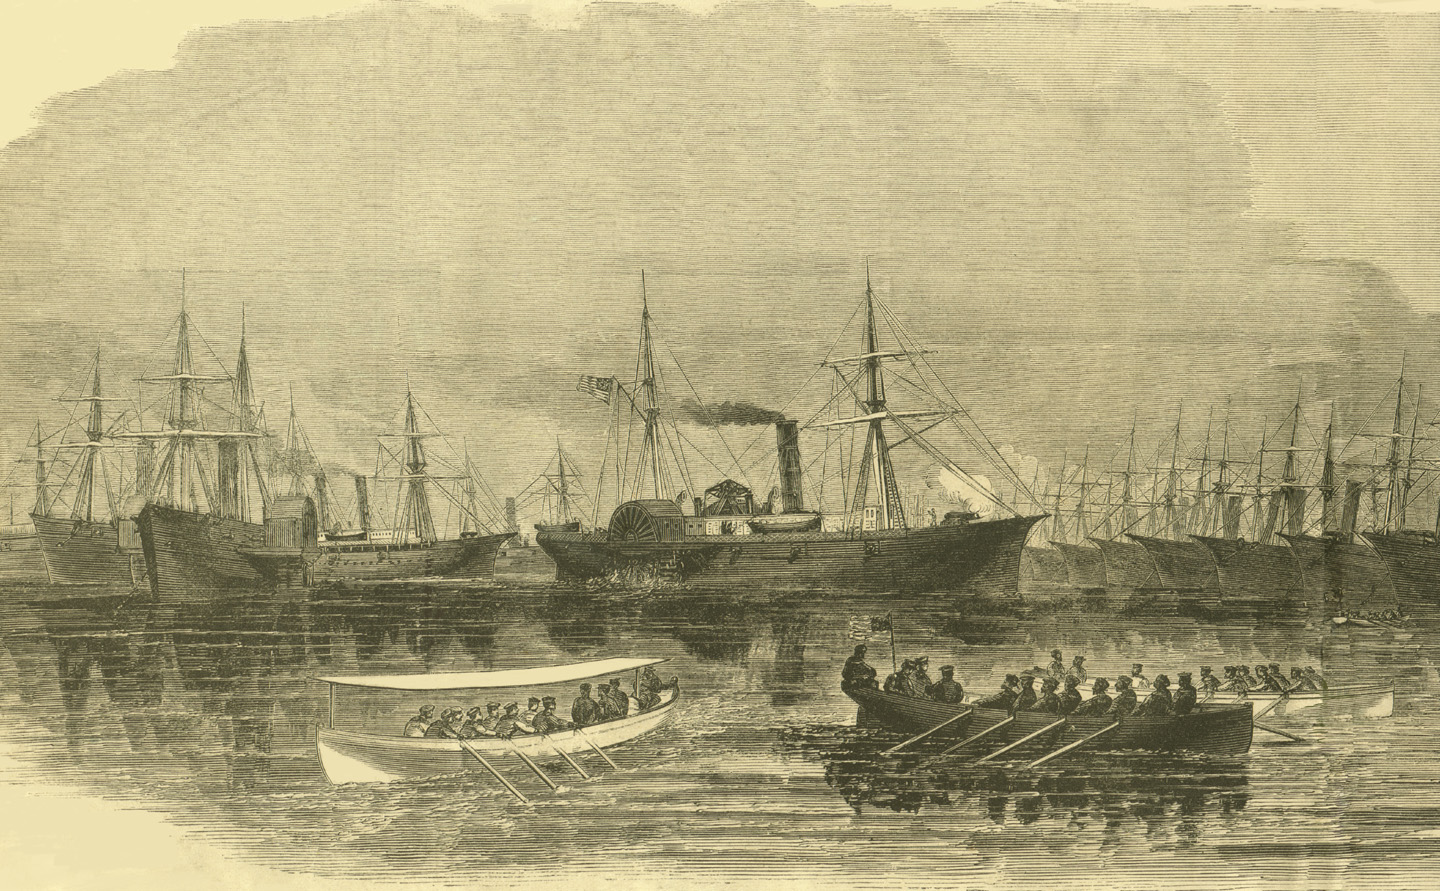 For as long as there have been ships, there have been people who work them...<BR>Harper's Weekly, 1860's,  Restored by Fred Herndon